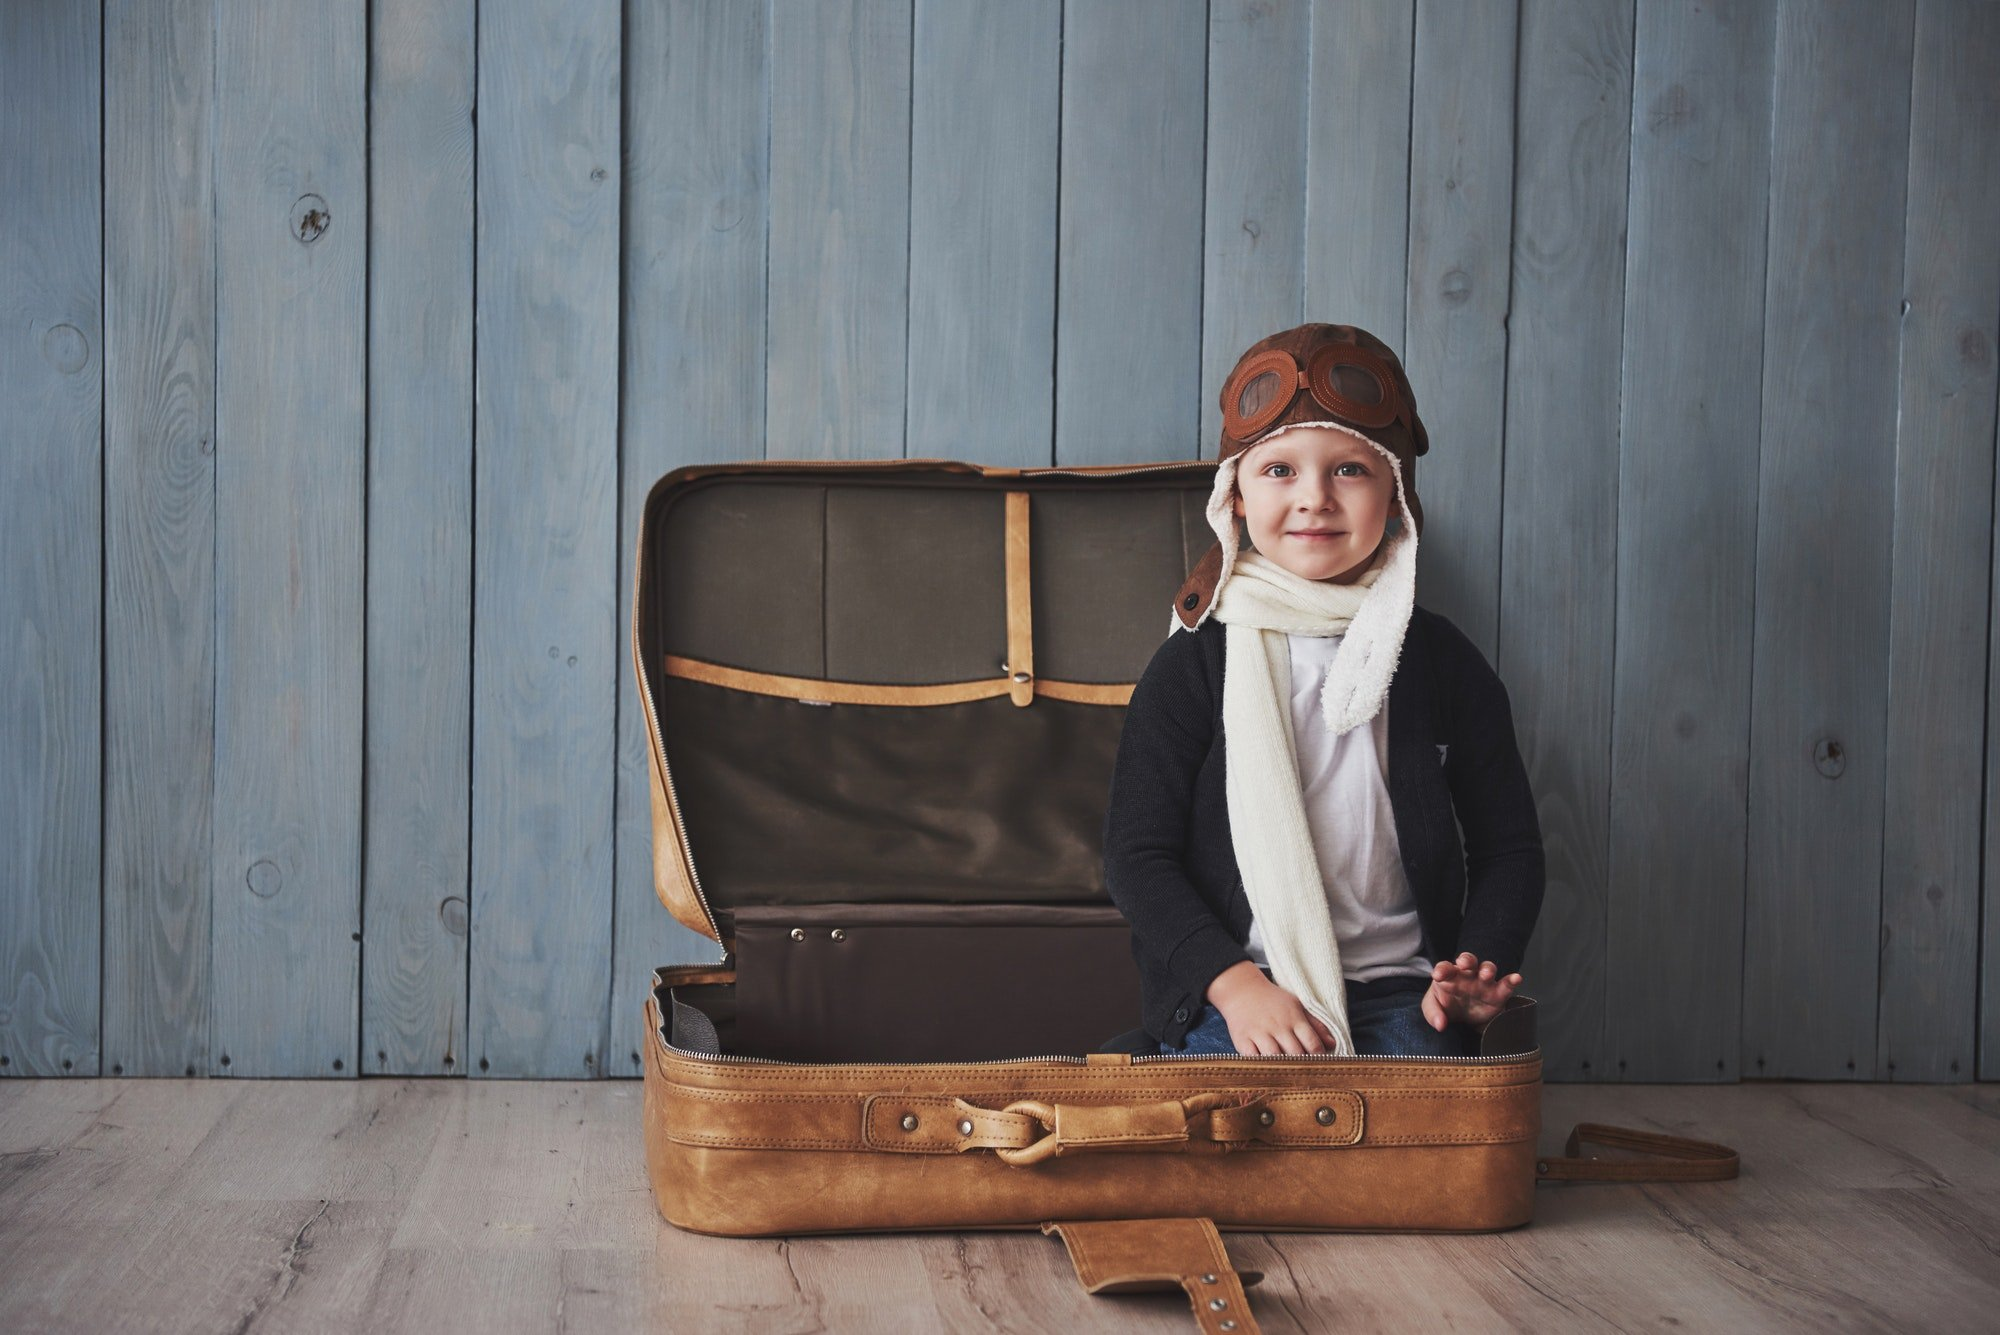 Happy kid in pilot hat playing with old suitcase. Childhood. Fantasy, imagination. Holiday